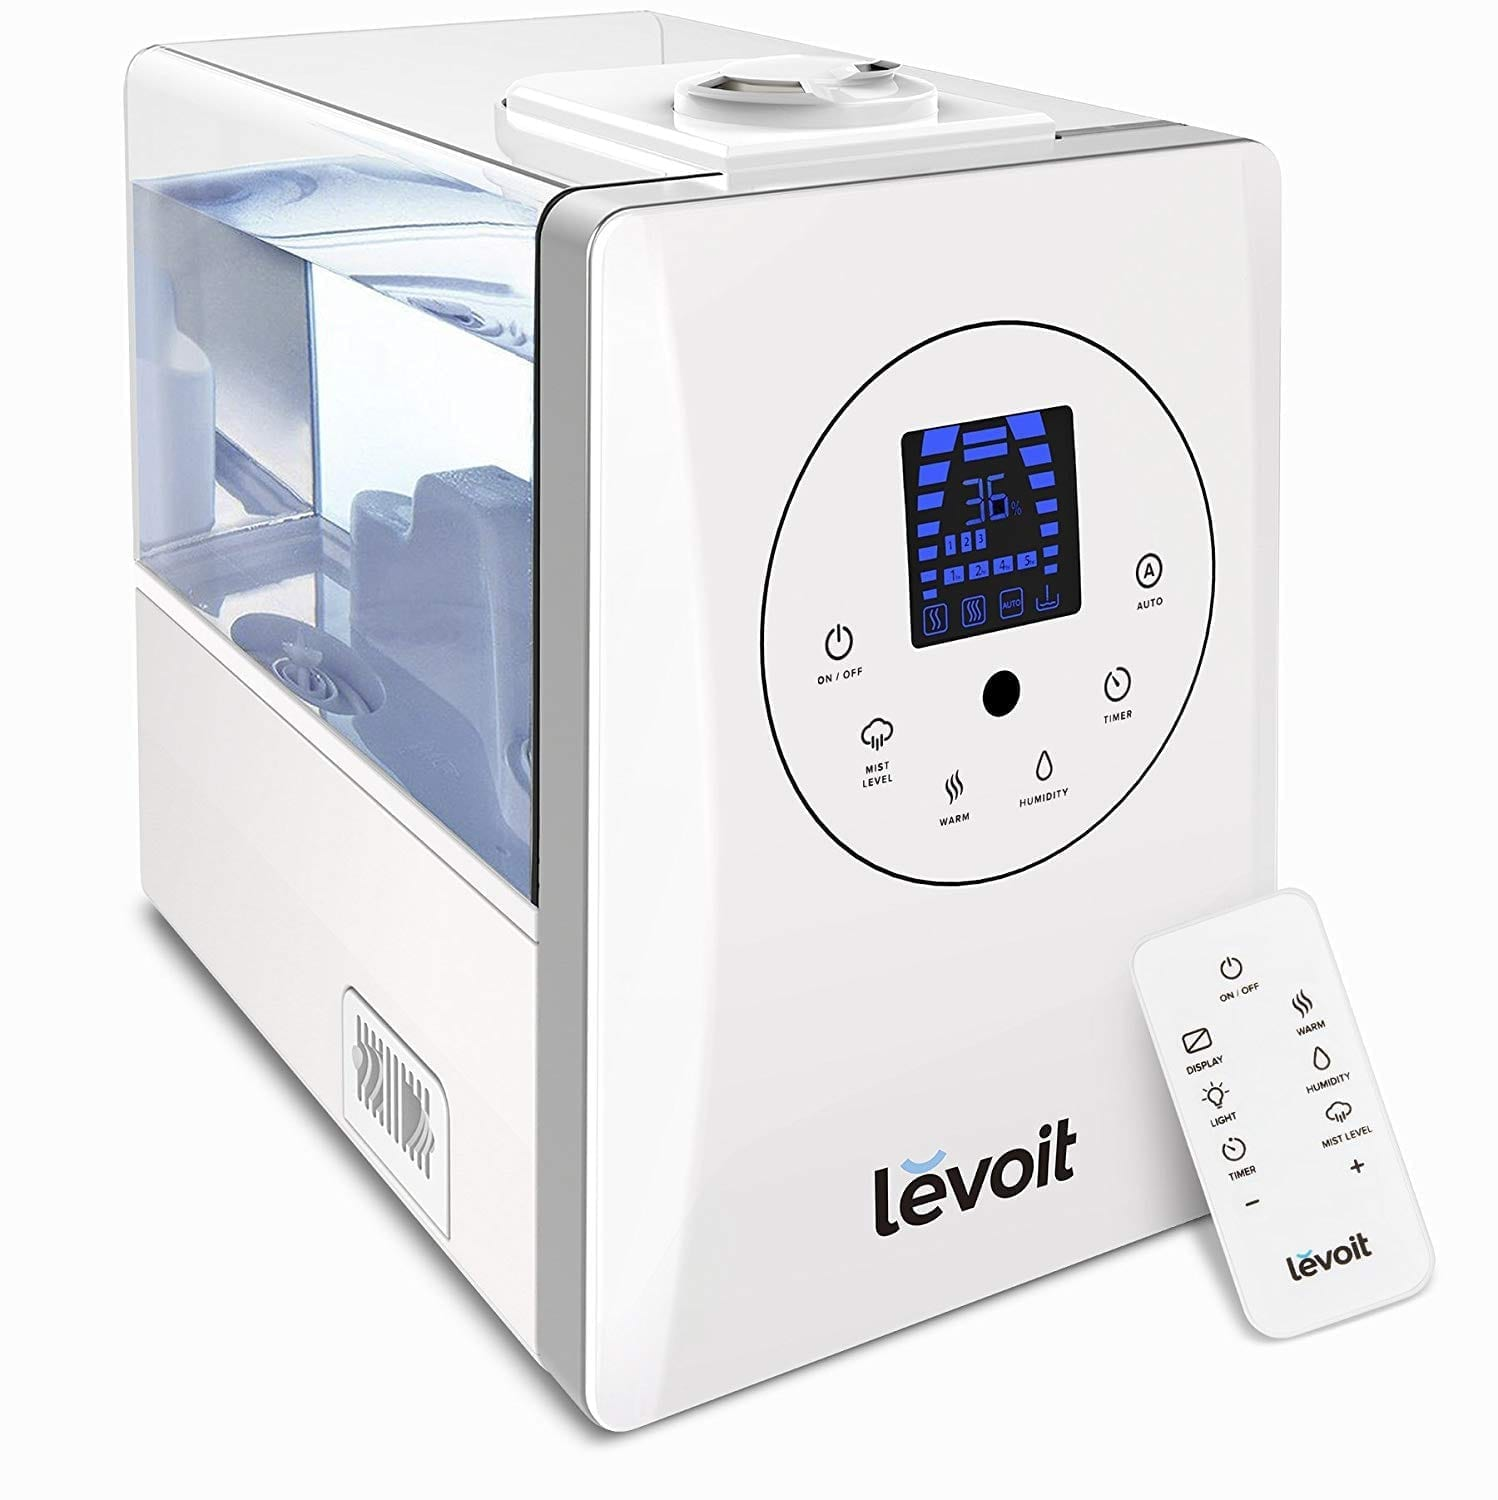 Levoit Humidifiers, Warm and Cool Mist Ultrasonic Humidifier